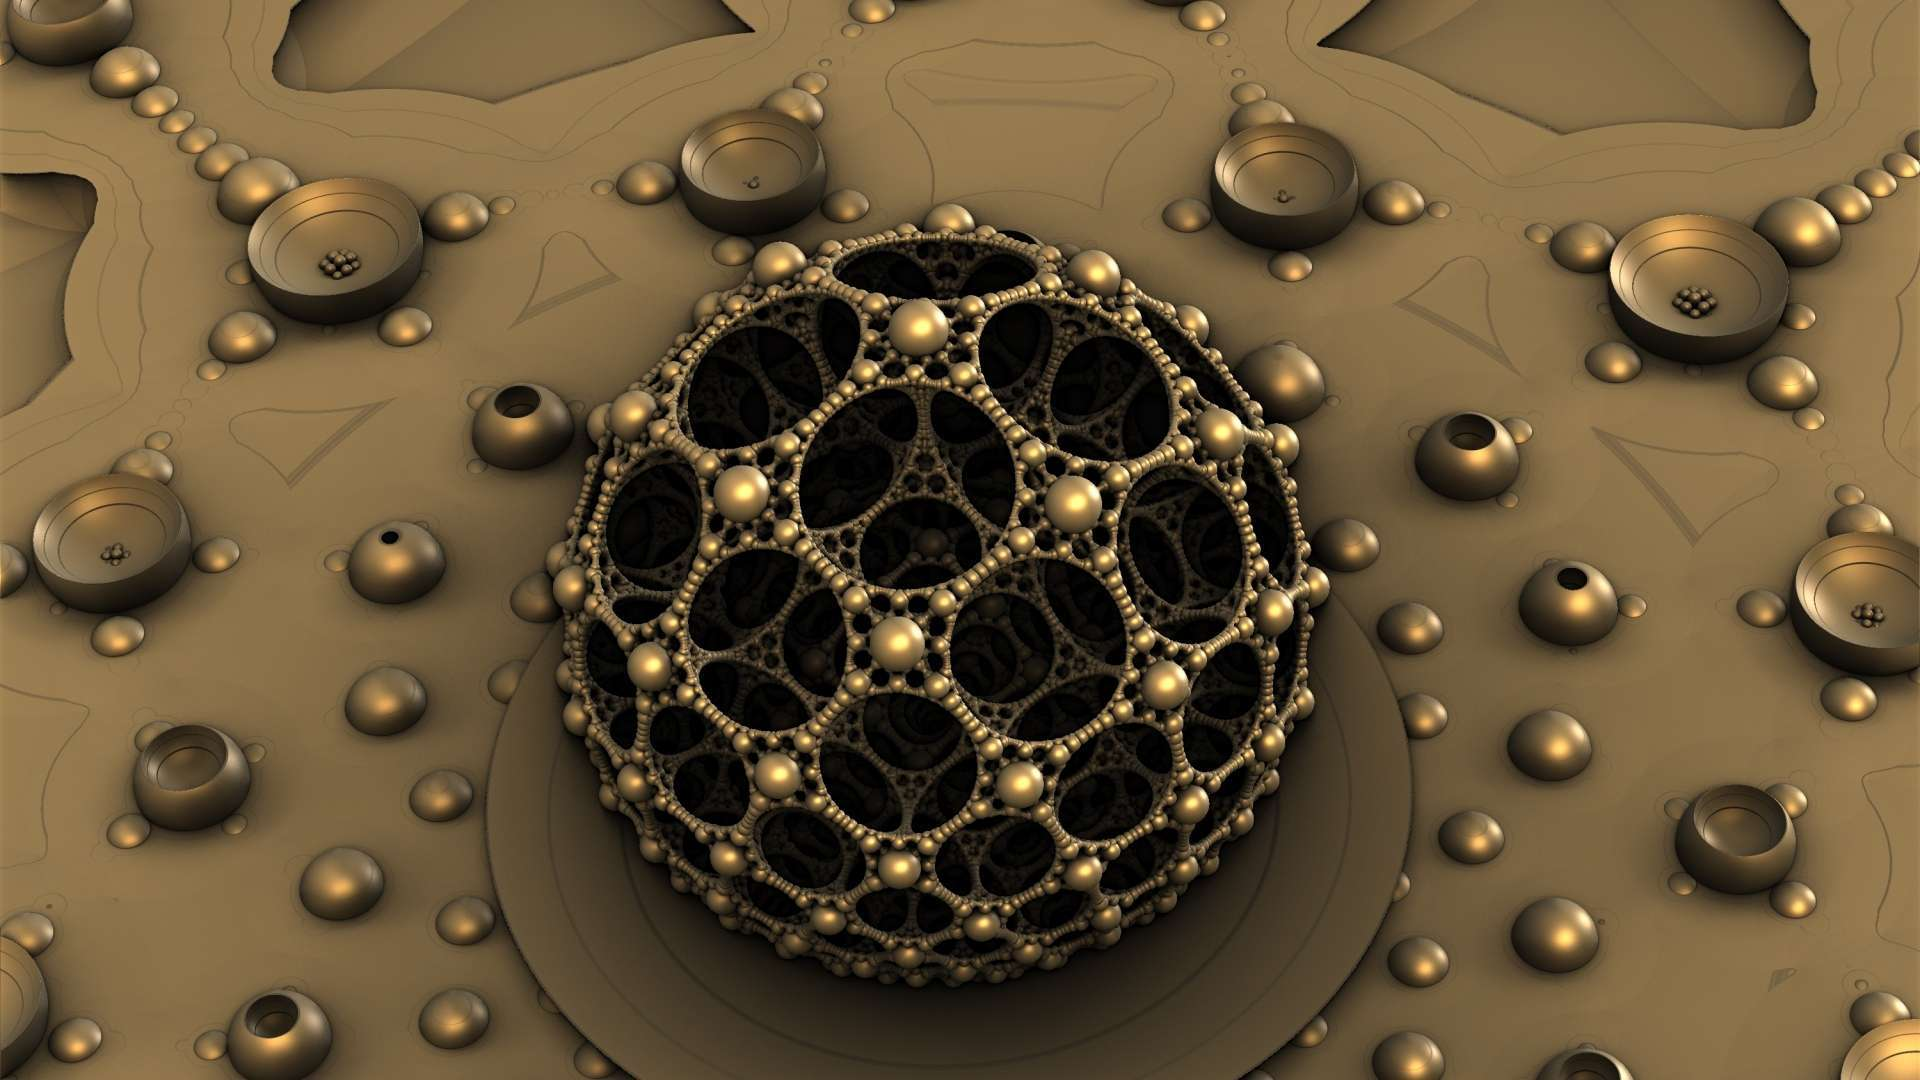 balls-fractal-shape-hd-1080p-1920×1080-wallpaper-wpc9002564